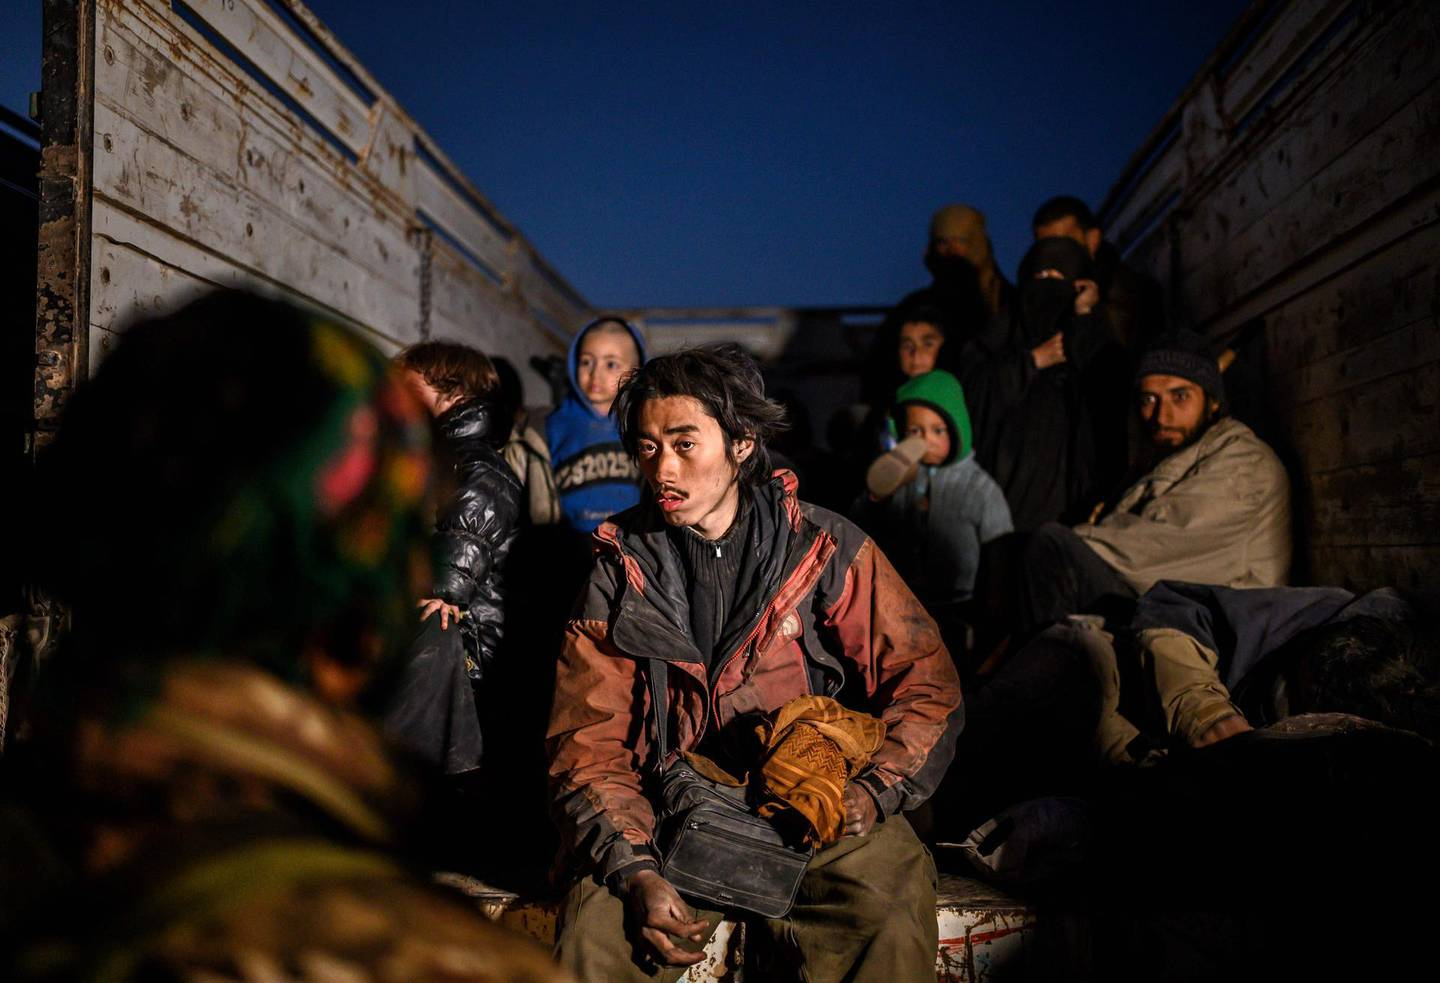 """TOPSHOT - A man (C) suspected of belonging to the Islamic State (IS) group, who spoke to AFP journalists in French, sits in the back of a truck as he waits to be searched by members of the Kurdish-led Syrian Democratic Forces (SDF) just after leaving IS' last holdout of Baghouz, in the eastern Syrian province of Deir Ezzor on March 4, 2019. The capture of Baghouz would mark the end of IS territorial control in the region and deal a death blow to the """"caliphate"""", which once covered huge swathes of Syria and Iraq. / AFP / Bulent KILIC"""